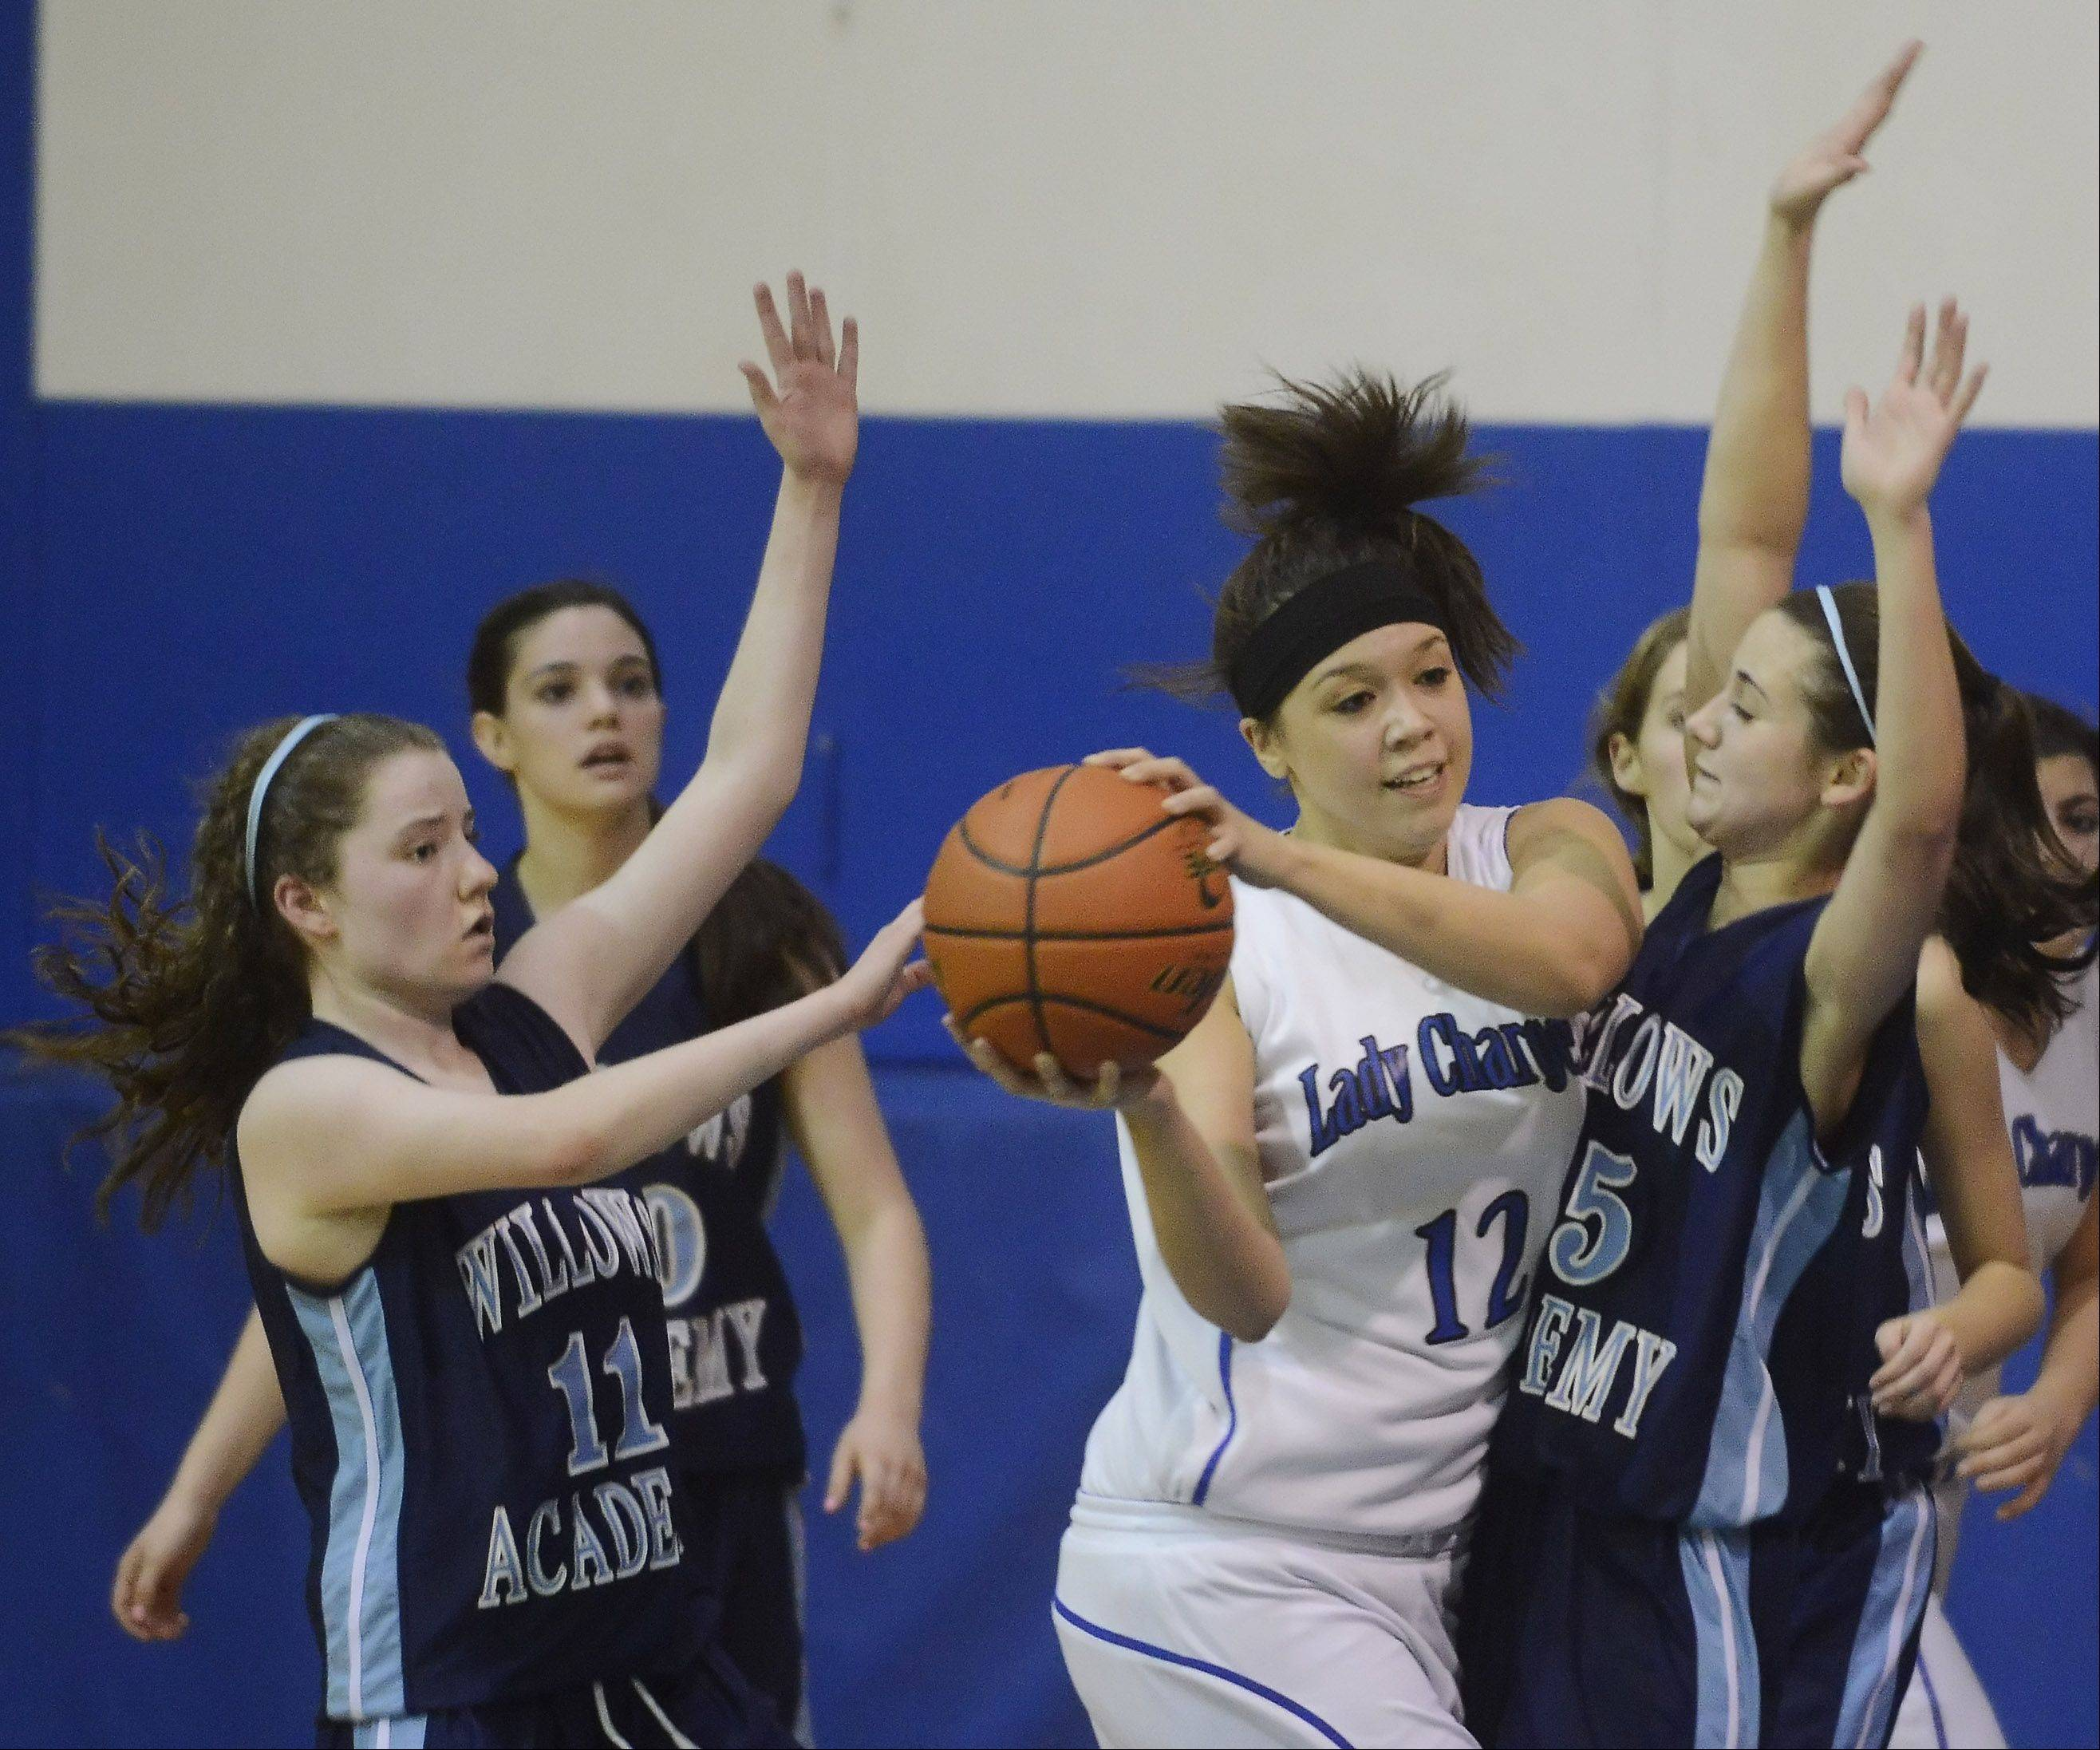 Shelby Hernandez of Christian Liberty Academy, middle, looks for an open teammate as Brigid Walsh, left, and Keelin McNally of Willows Academy defend during Wednesday's game.